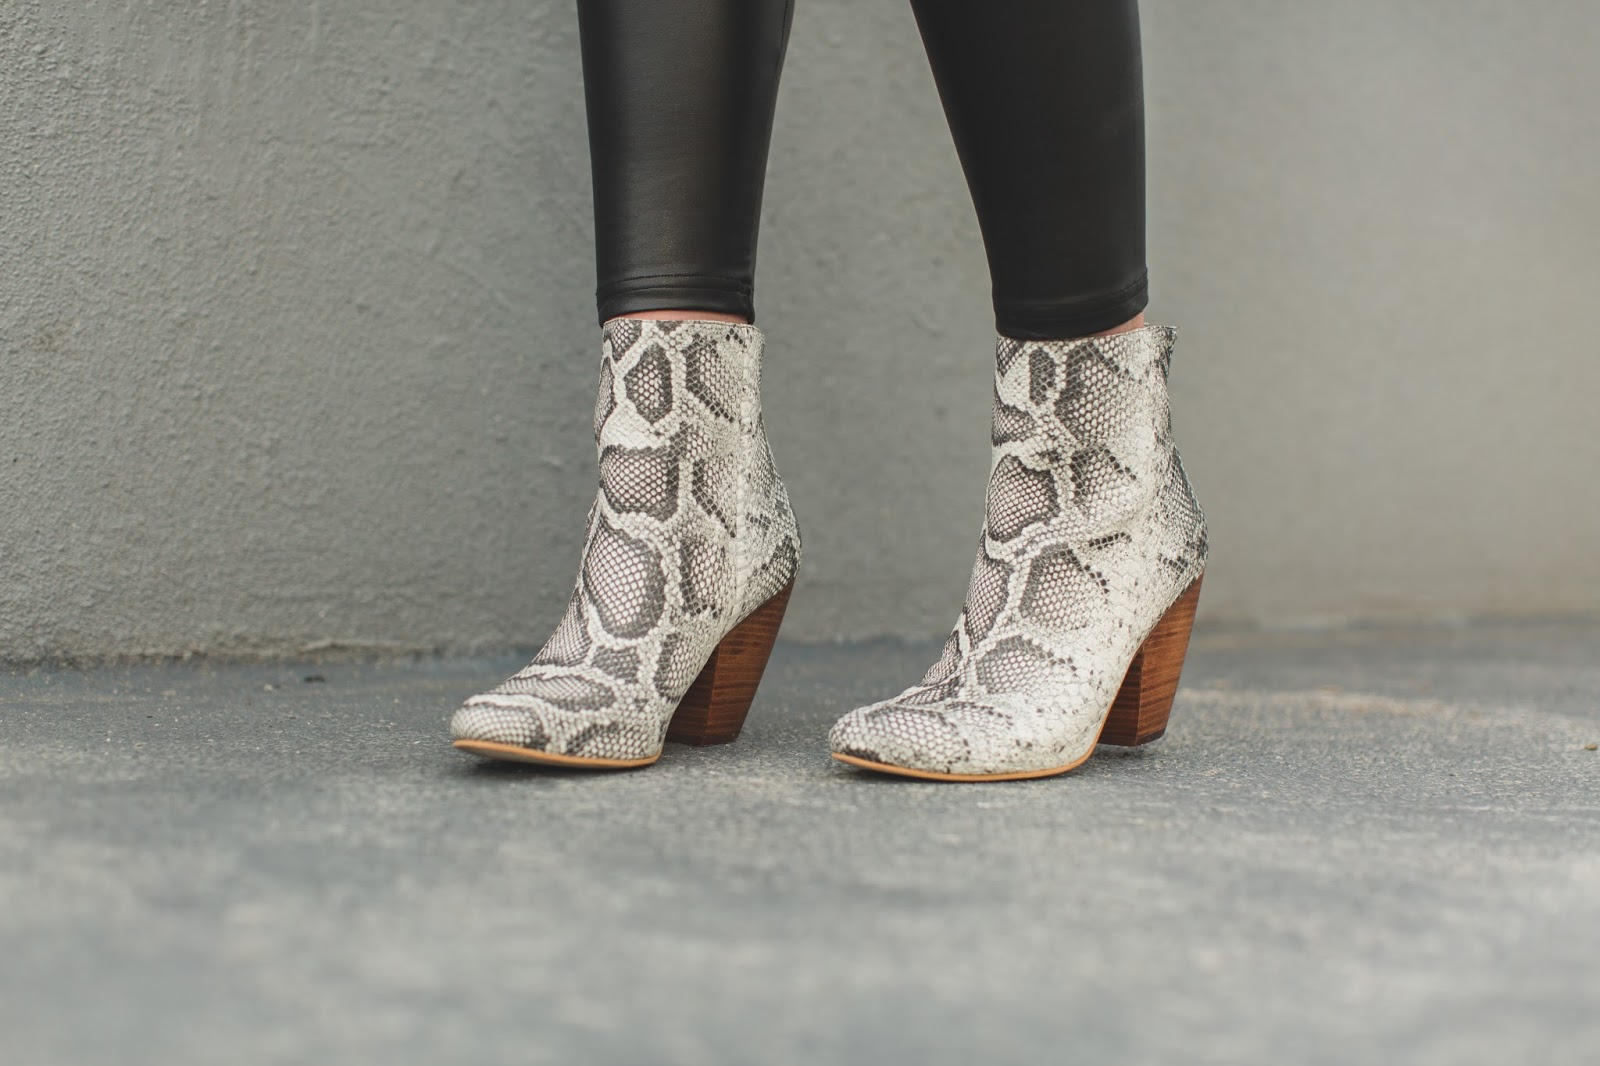 Snakeskin Booties, Leather Leggings, Corso Como